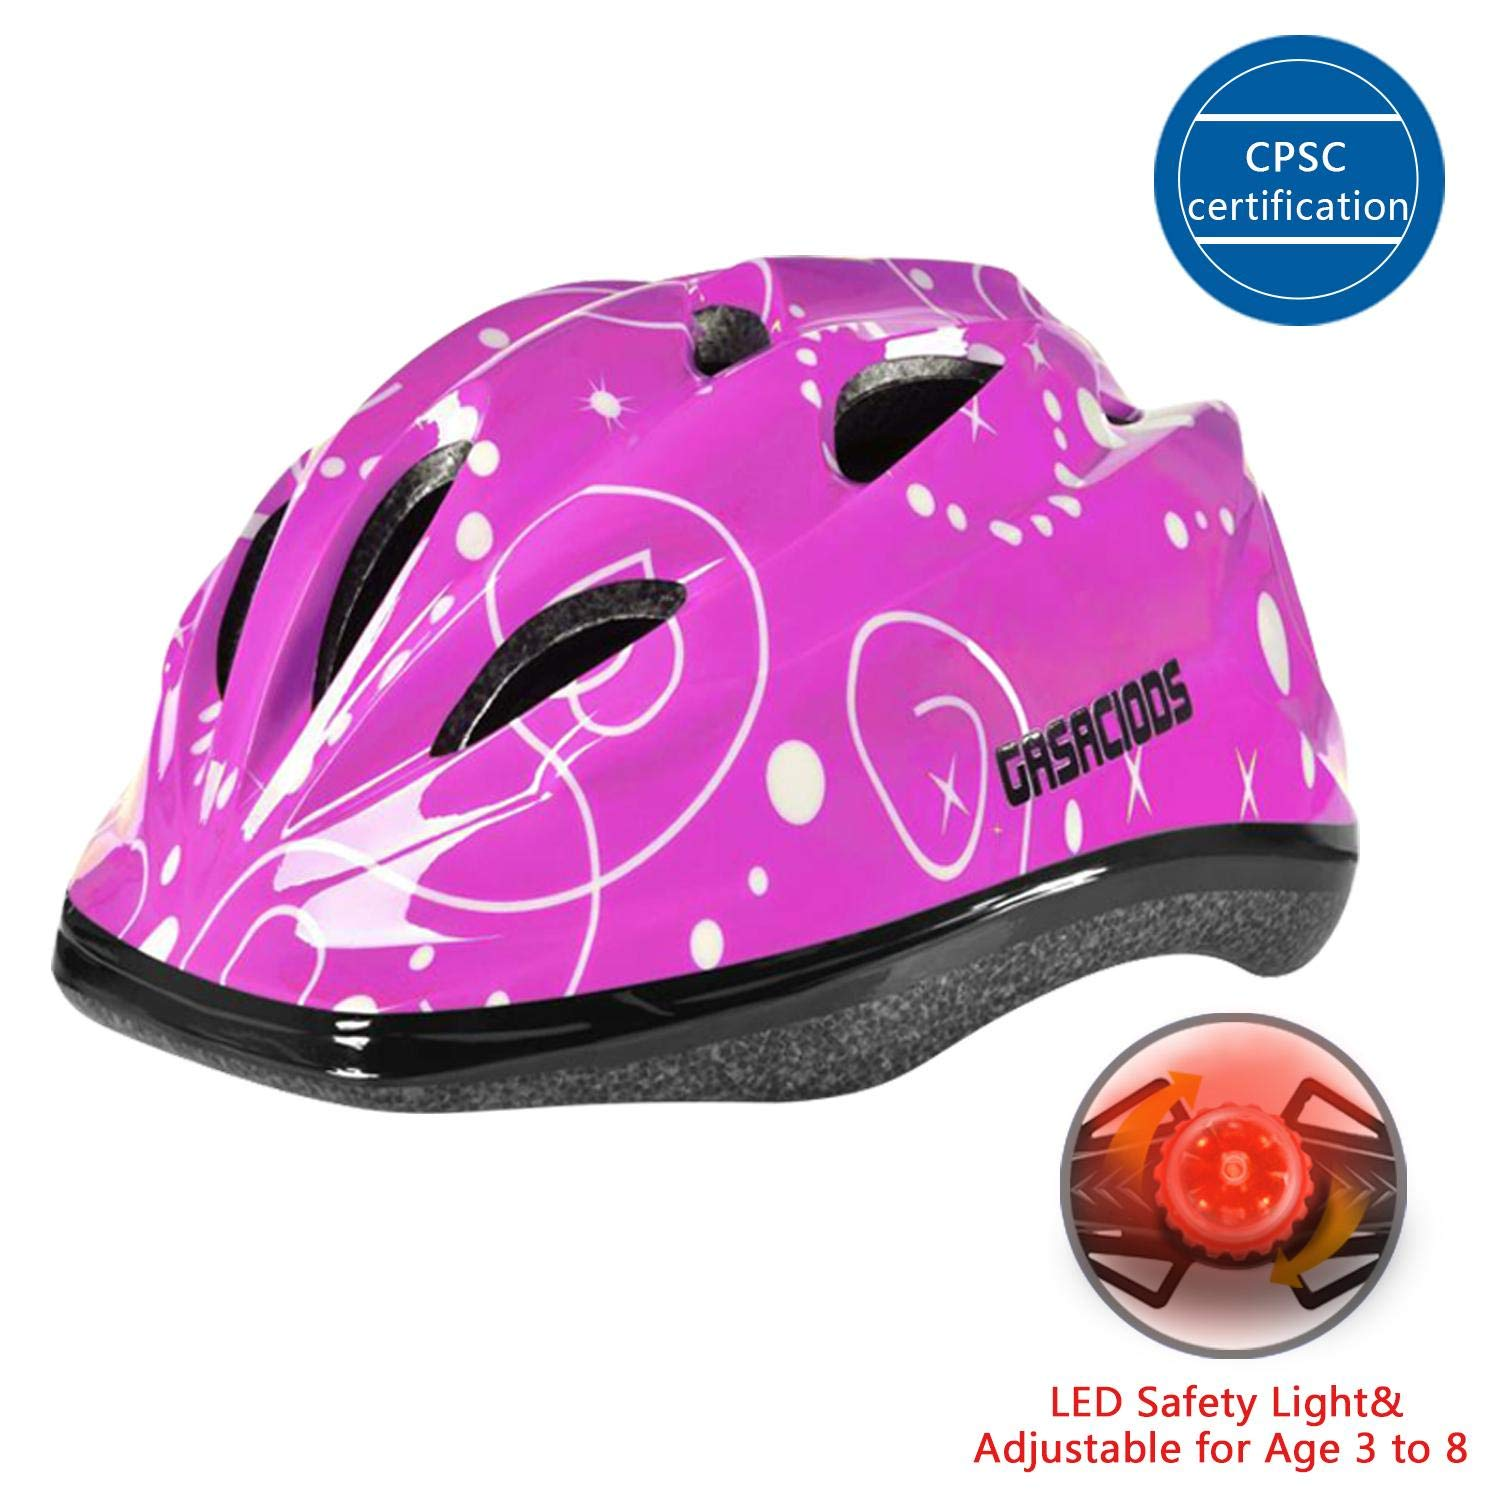 Kids Child Bike Skateboard Helmet With LED Warning Light Adjustable ASTM CPSC Safety for Scooter Rollerblading Inlineskating Cycling Balance Mutli-sport for Girls Boys 3-8 Year old Toddler